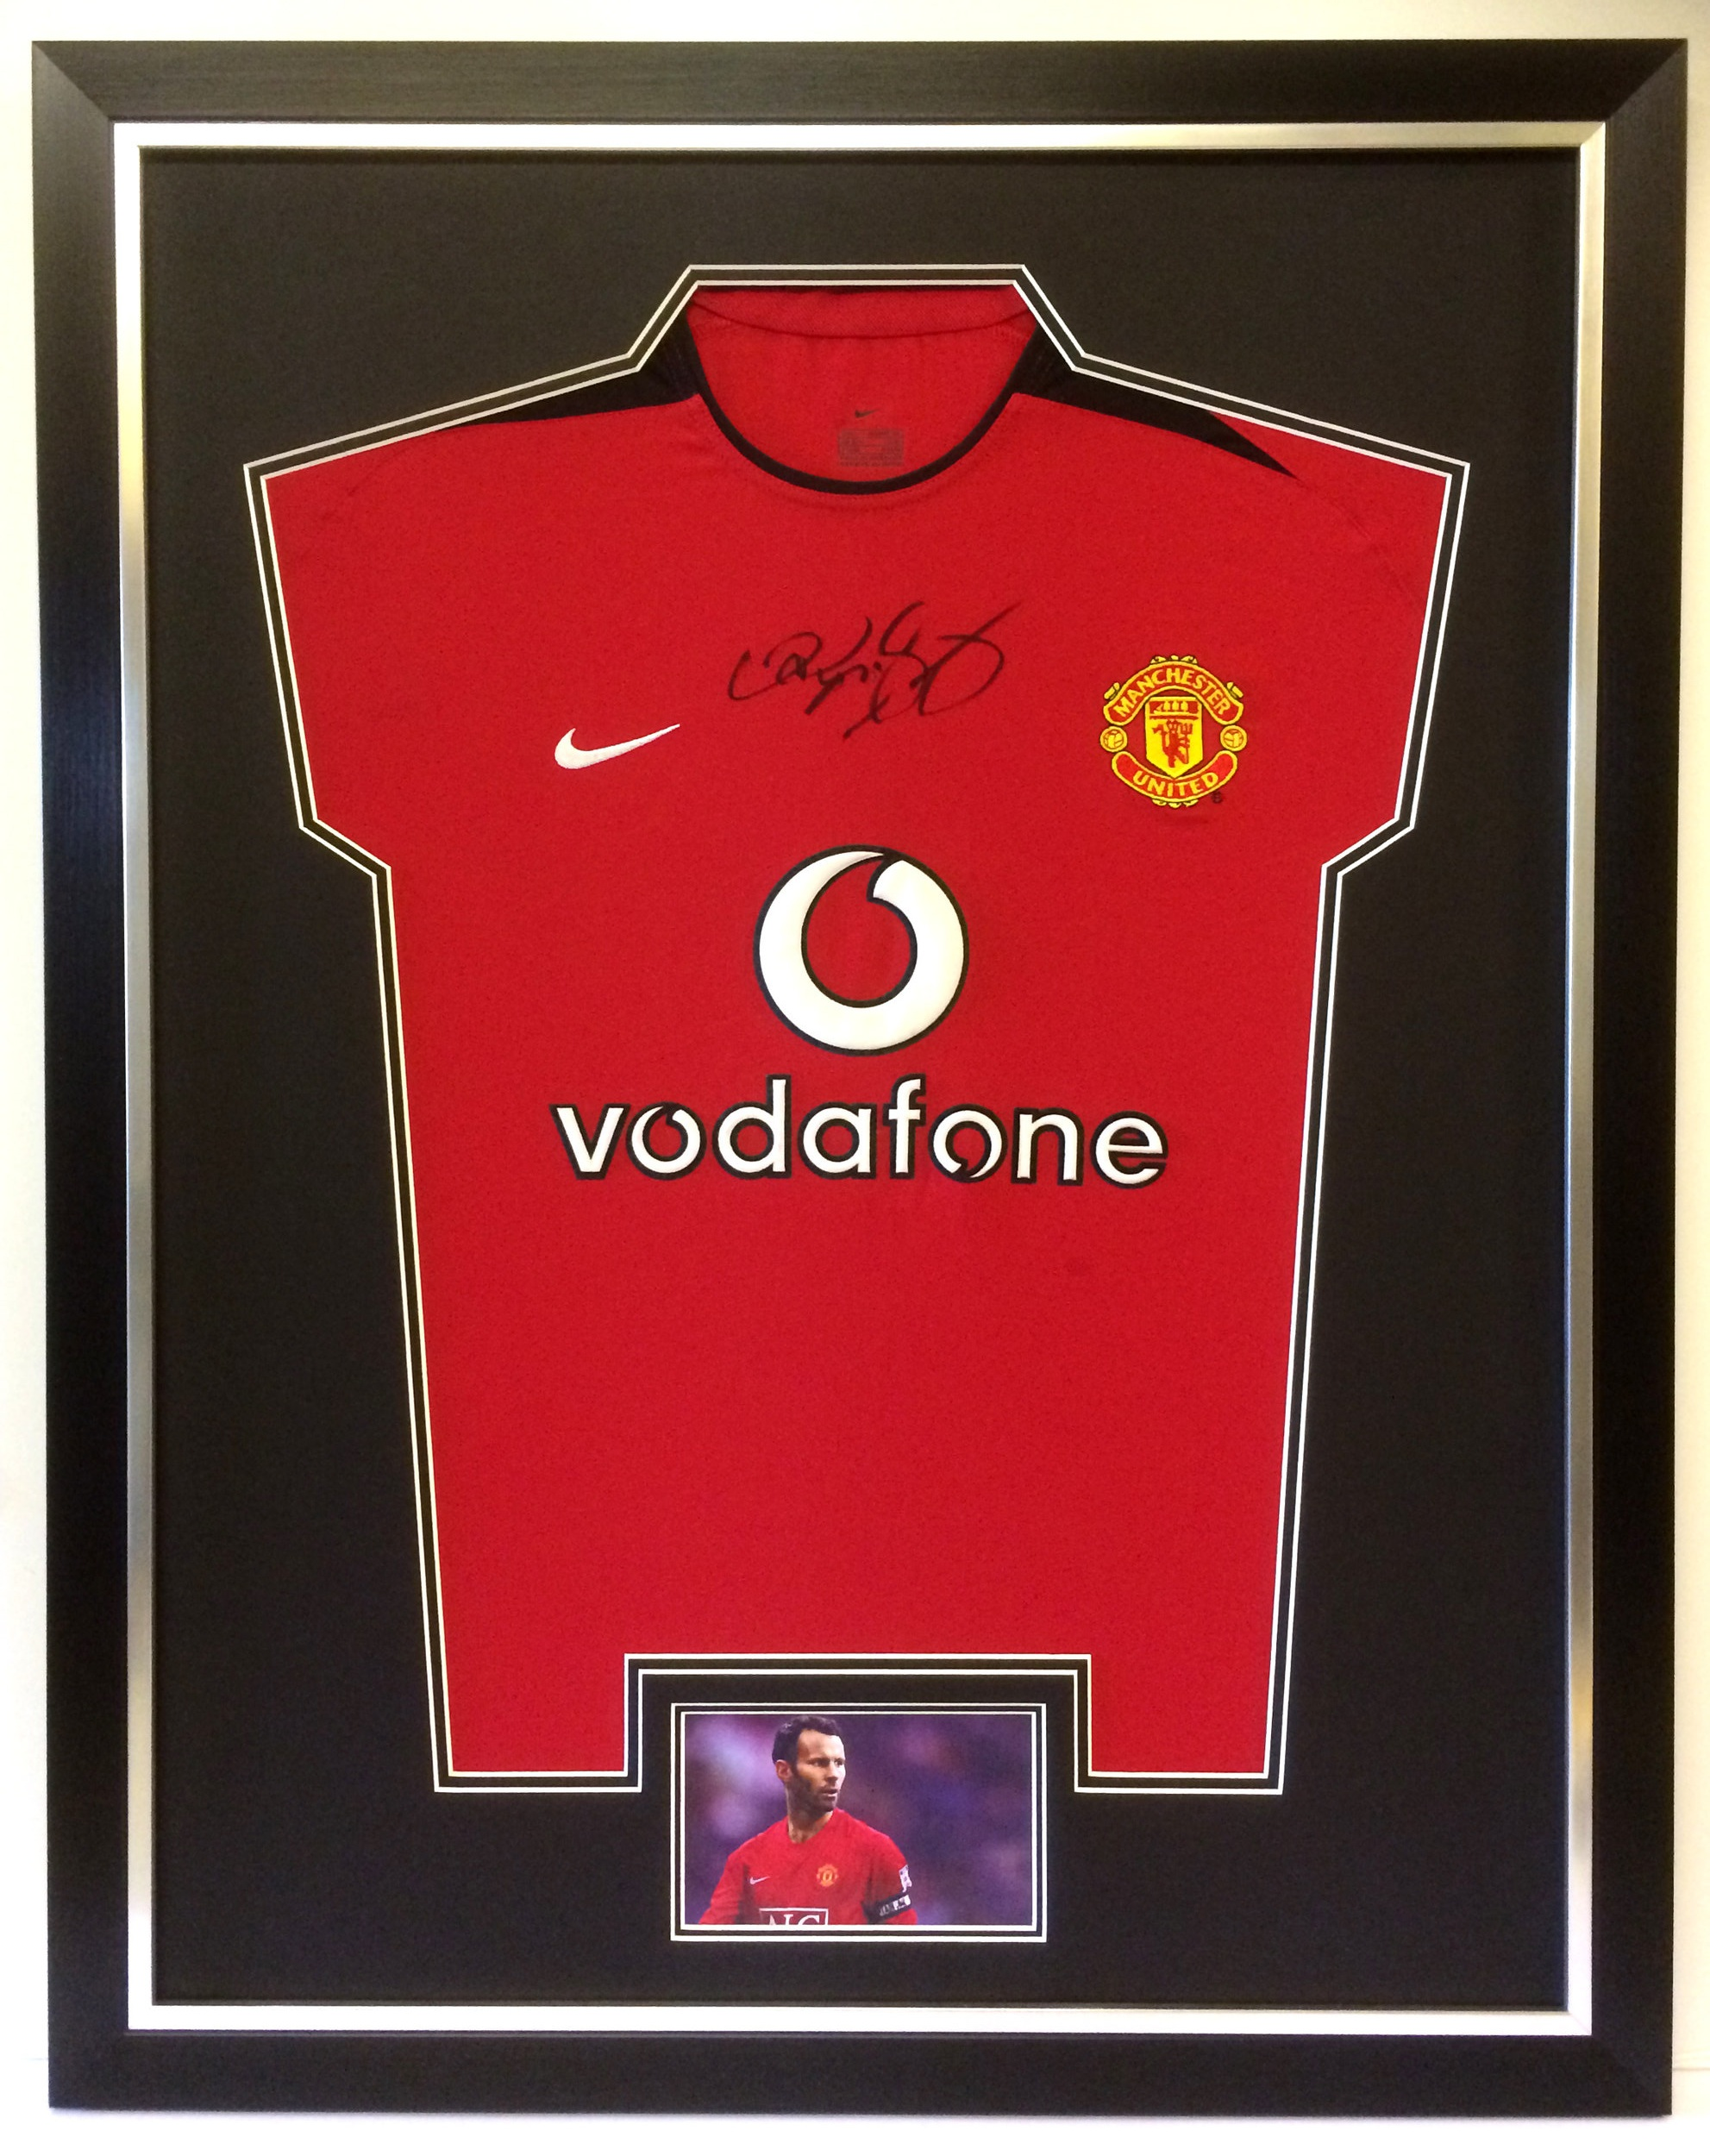 Our customers'  most popular choice for framing shirts. We have one on display in the gallery. We do not use sticky tape but pin them in place and level the backs to give a neat finish on the reverse. A deep frame is needed to stop any bowing on the back.